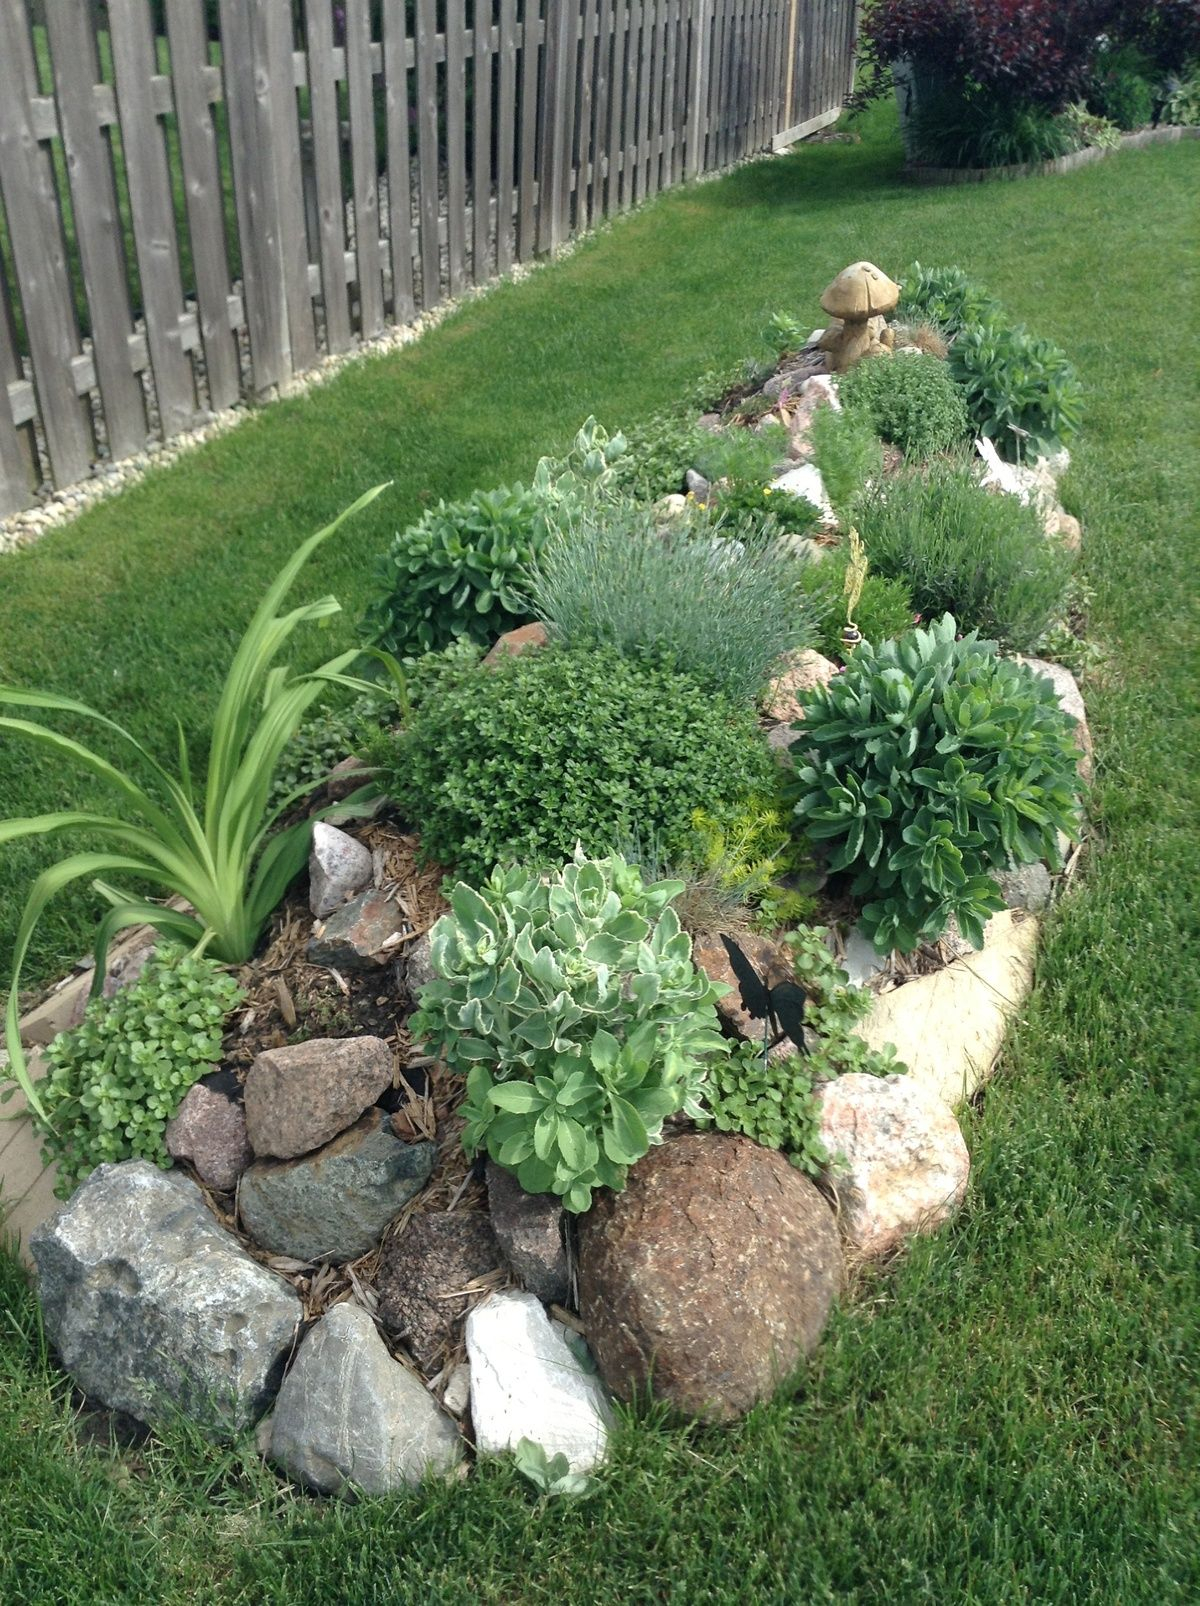 Outdoors Complete Your Backyard Decoration With Rock Landscaping inside Backyard Landscaping Ideas With Stones